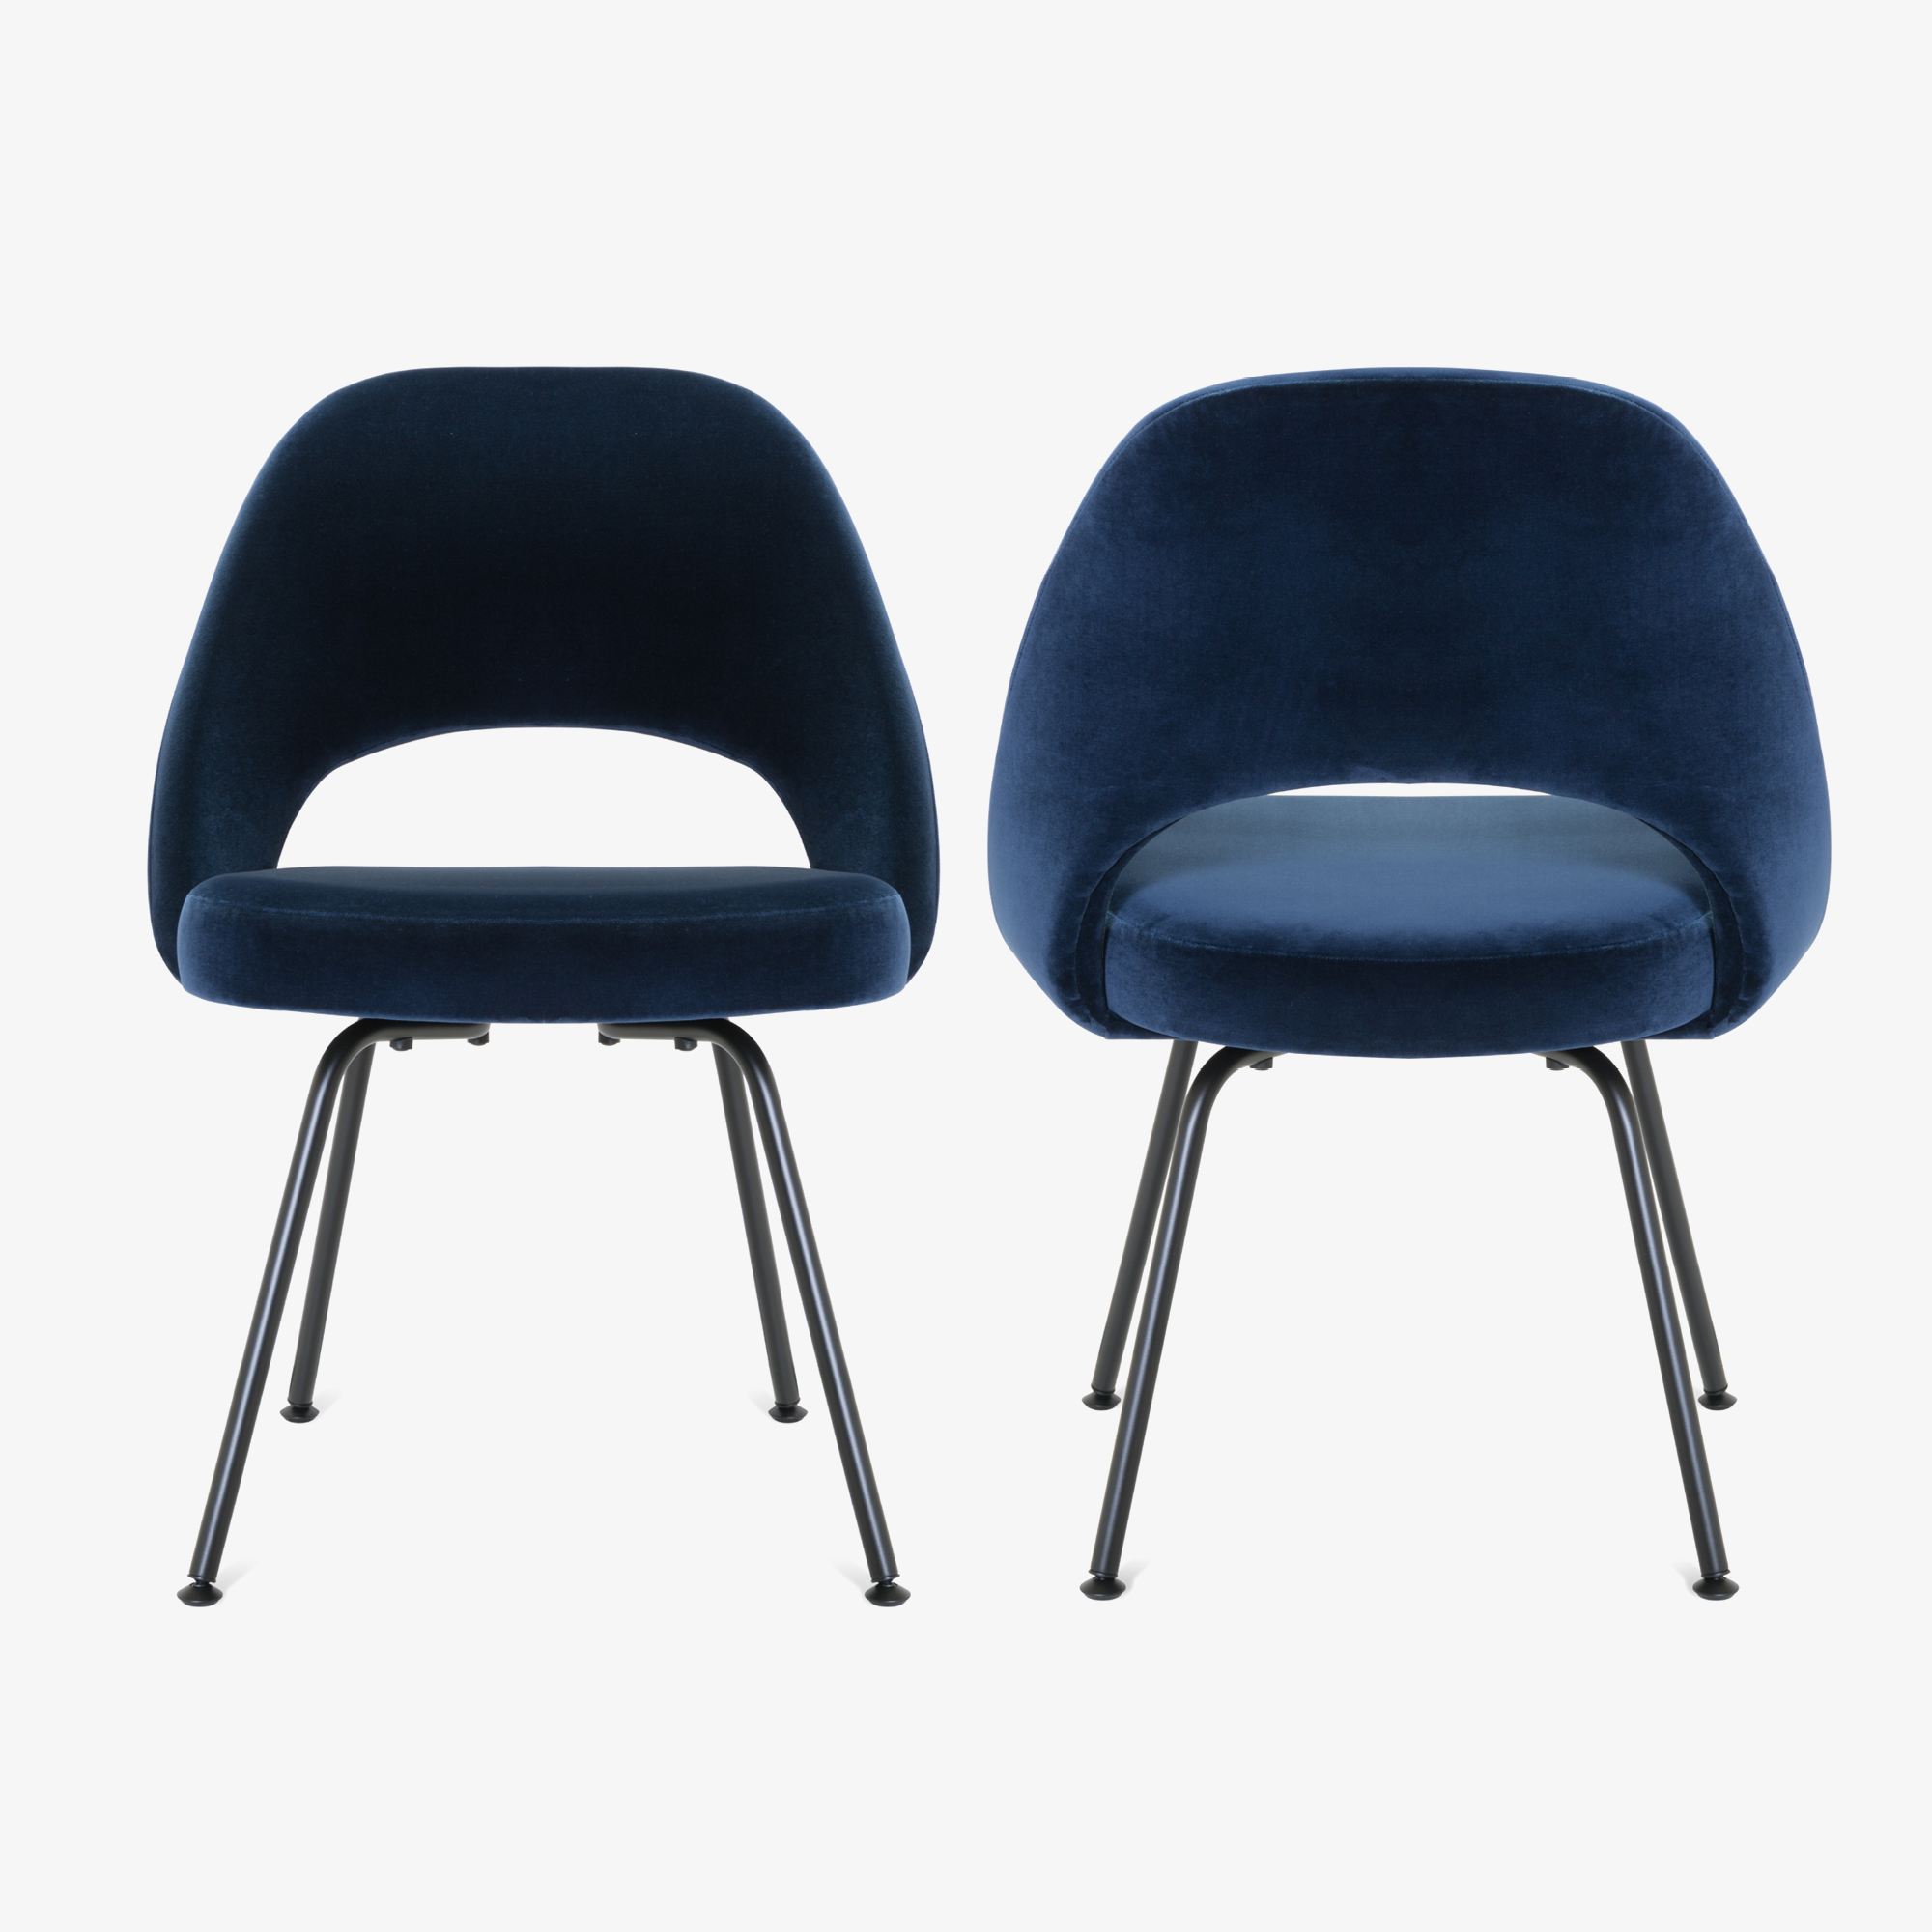 Saarinen Executive Armless Chairs in Navy Velvet, Black Edition5.png